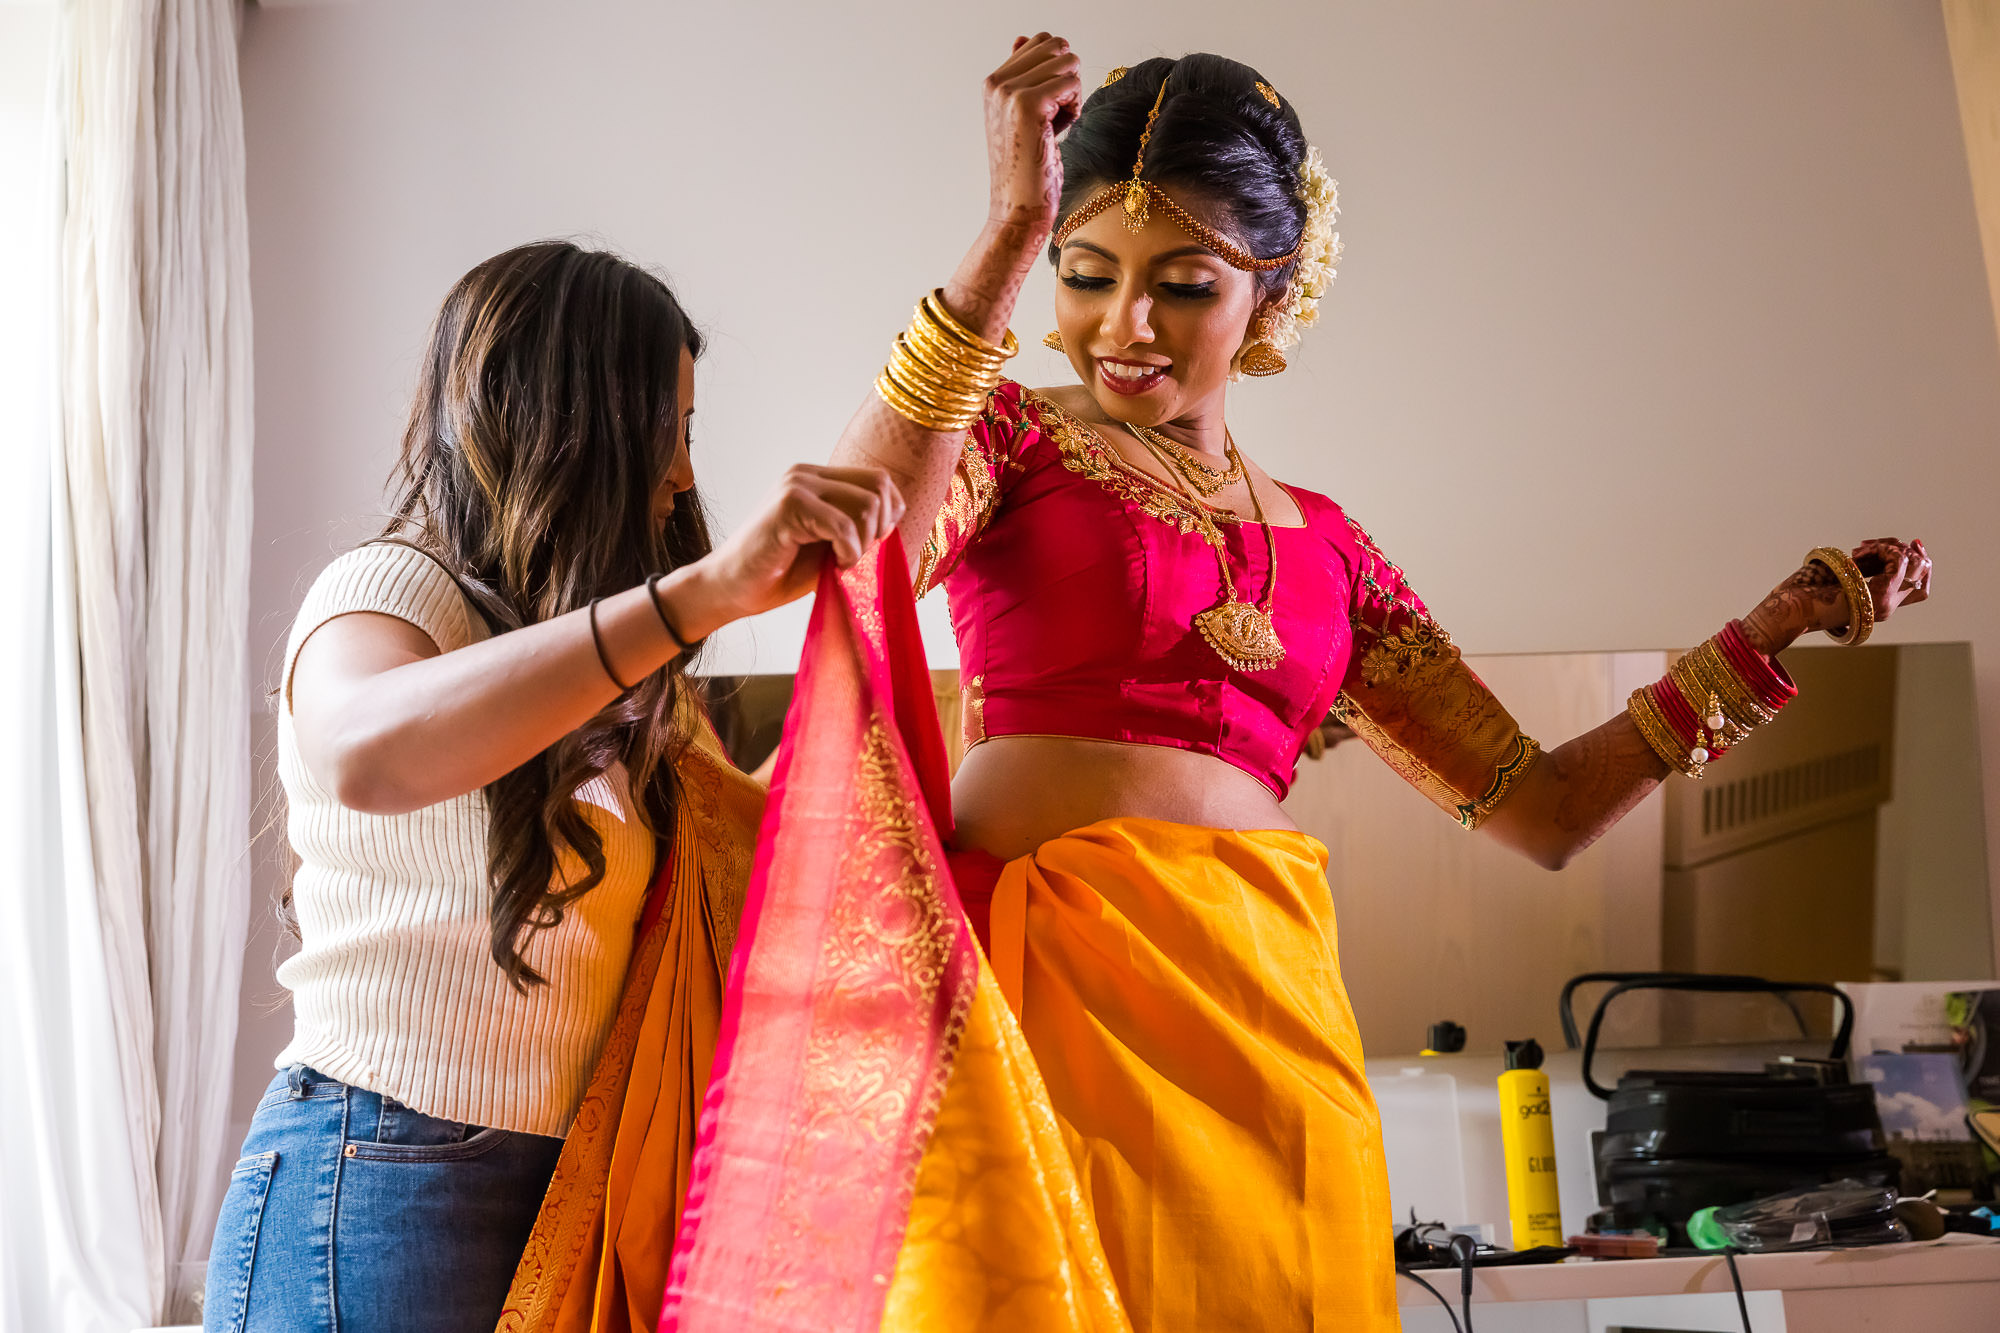 asian-wedding-hindu-tamil-photographer-heythorpe-oxford-0020.jpg